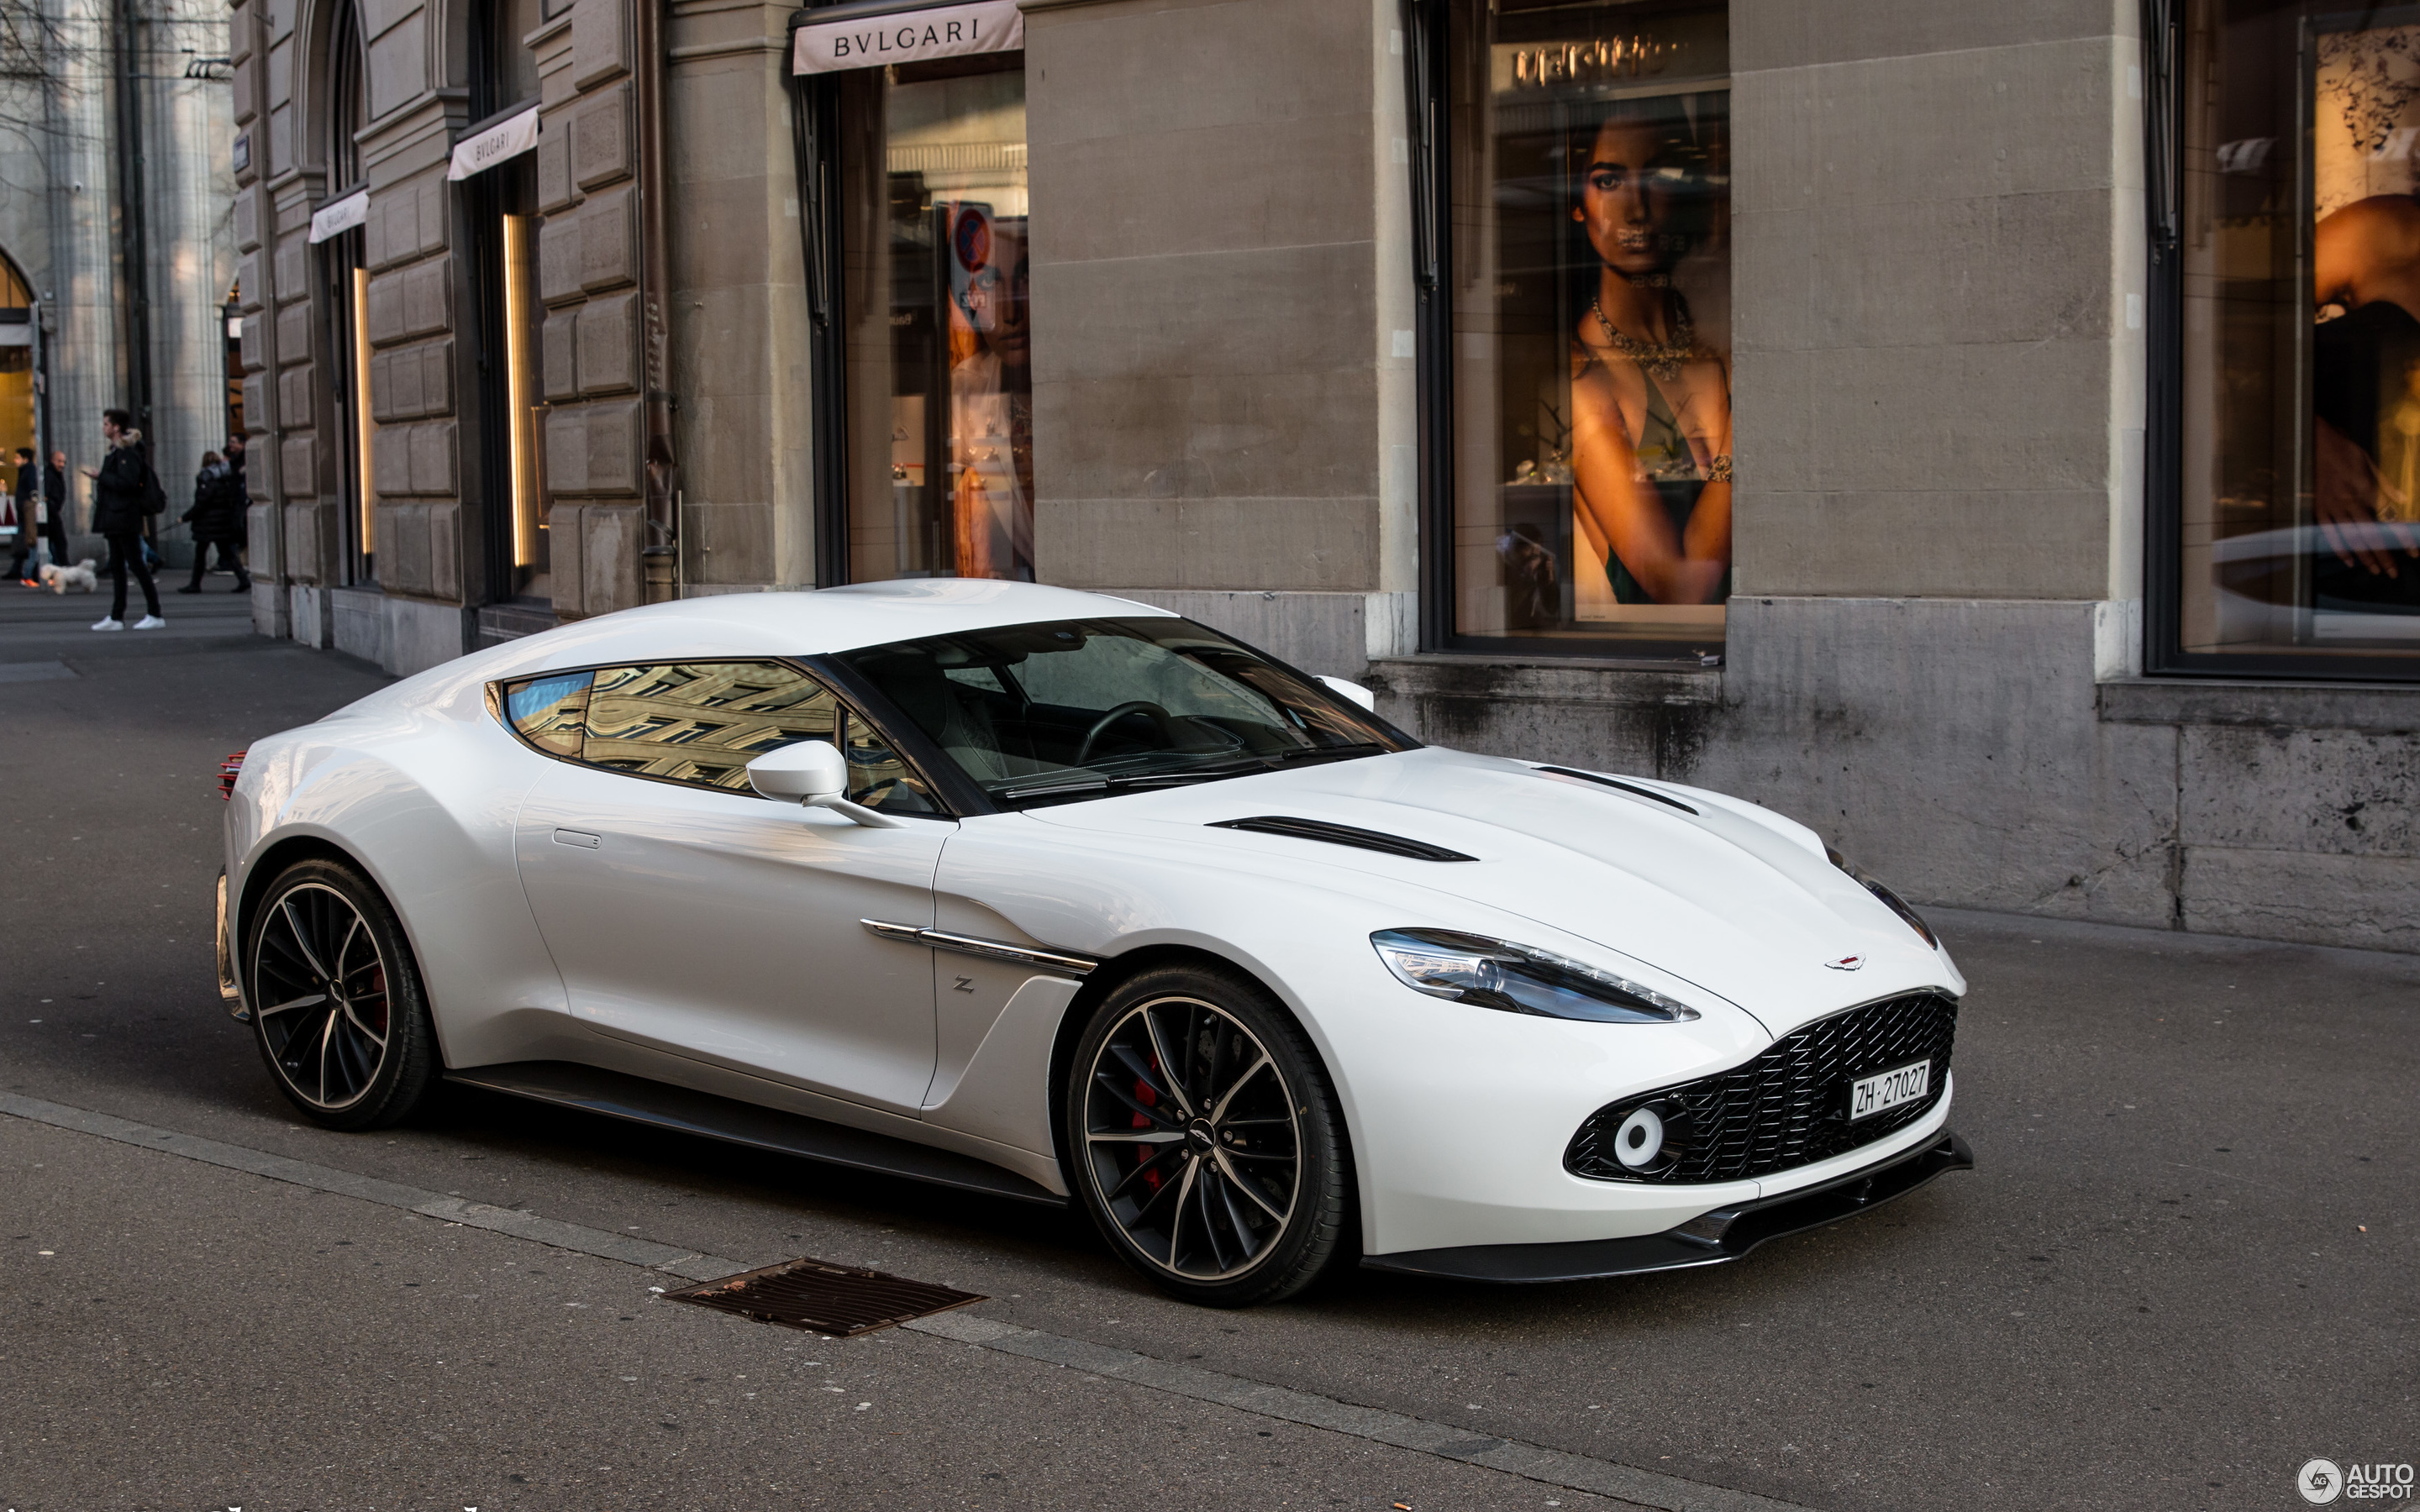 Aston Martin Vanquish Zagato - 13 January 2018 - Autogespot